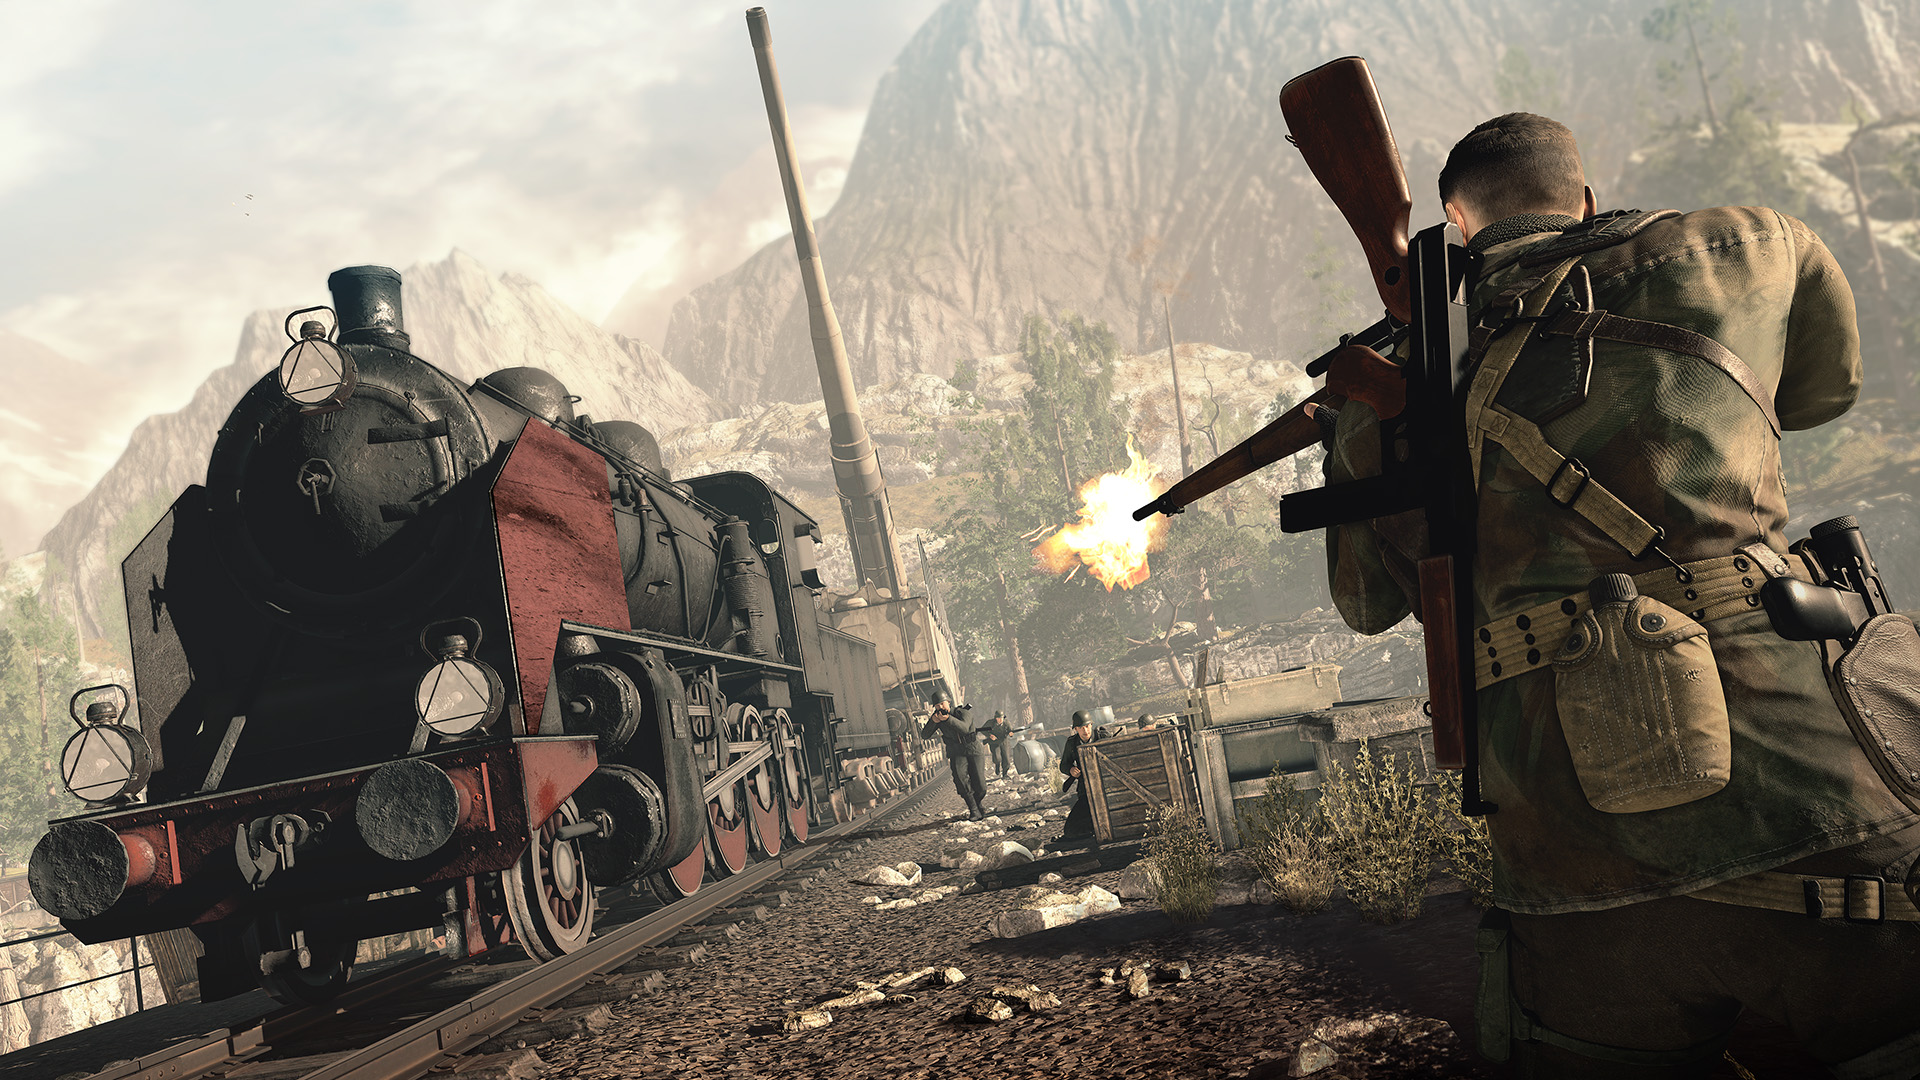 Sniper Elite 4 HD Wallpapers and Background Images   stmednet 1920x1080